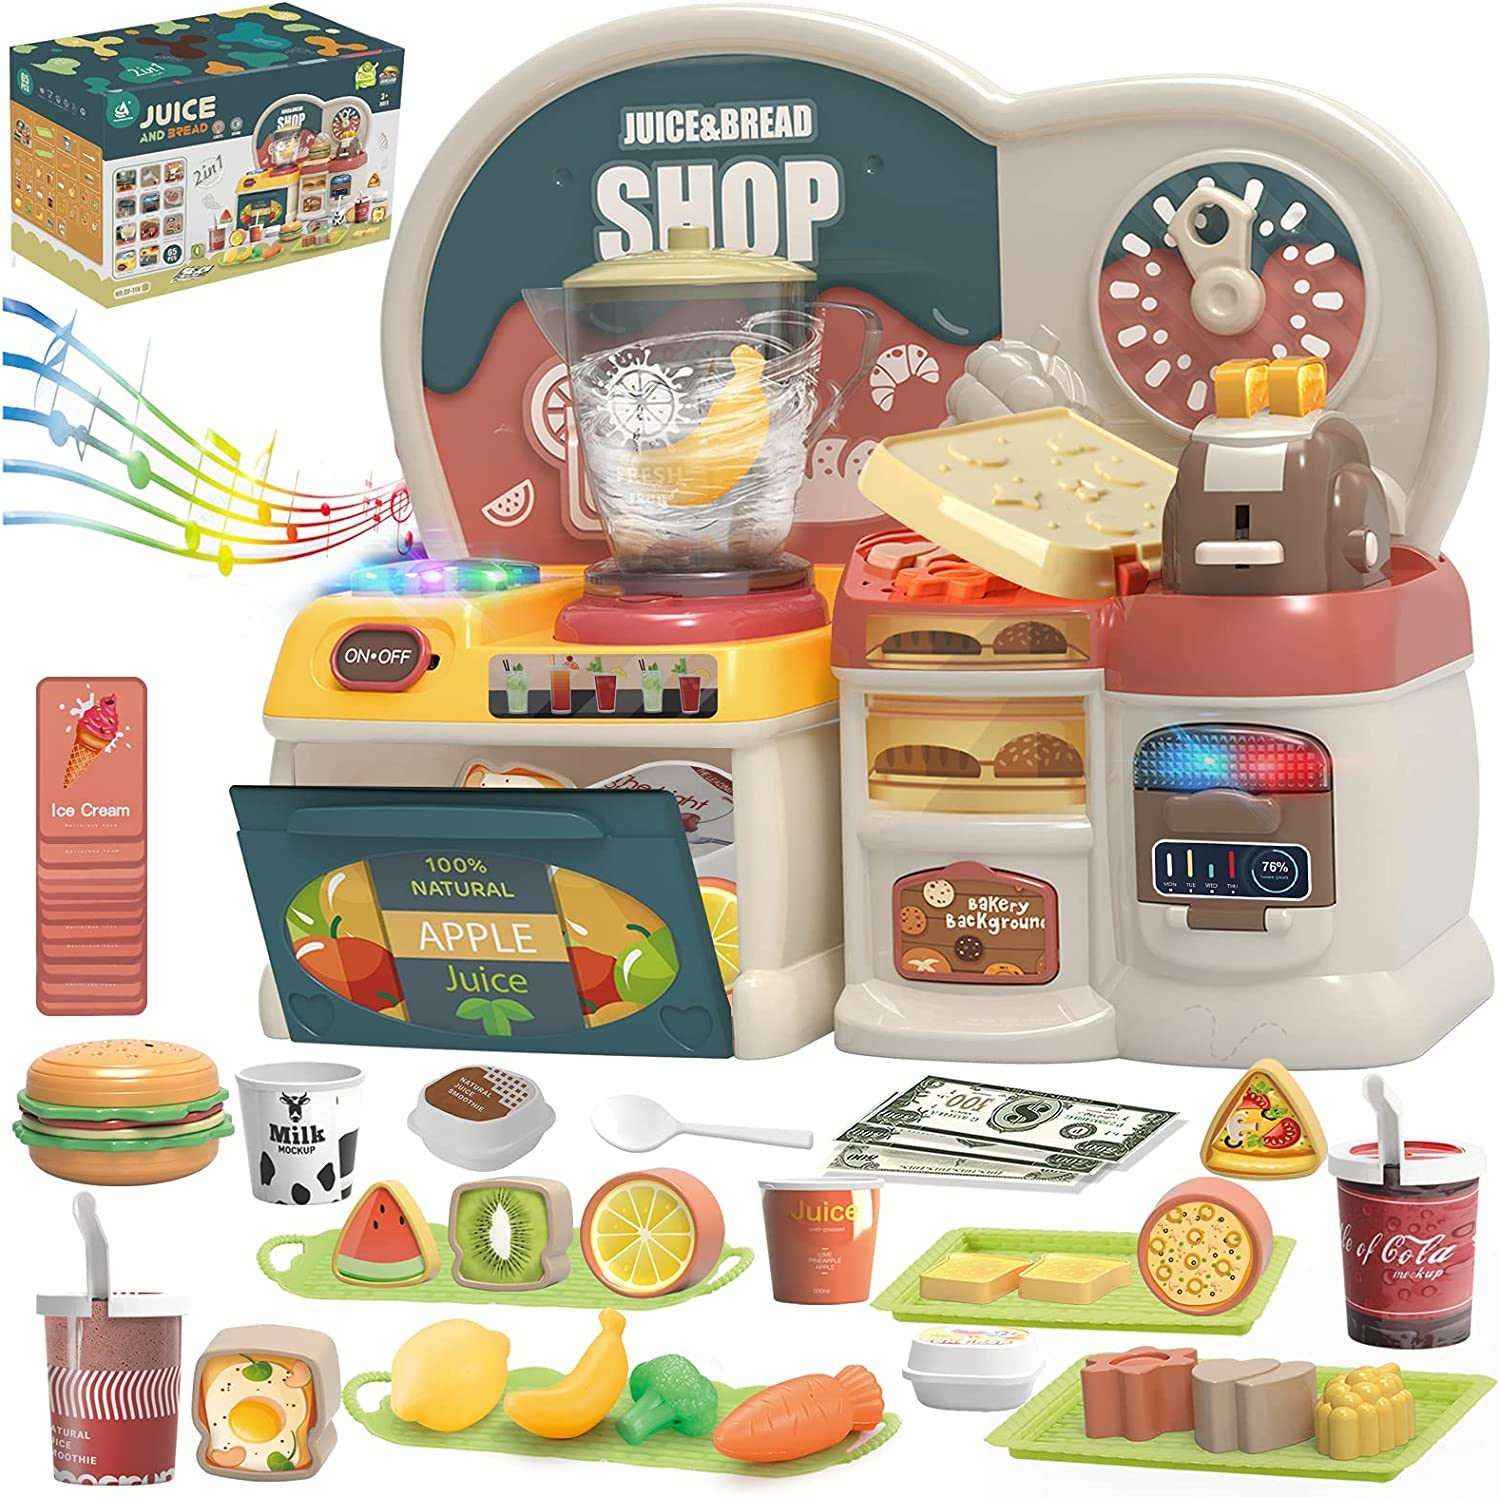 Kitchen Toys for Kids - Toaster & Juice Blender Pretend Play Set w/ Light, Music, Play Food, Encourage Imaginative Play Kitchen Playset, 65 Pcs Fun & Colorful Kitchen Accessories Toy for Girls & Boys